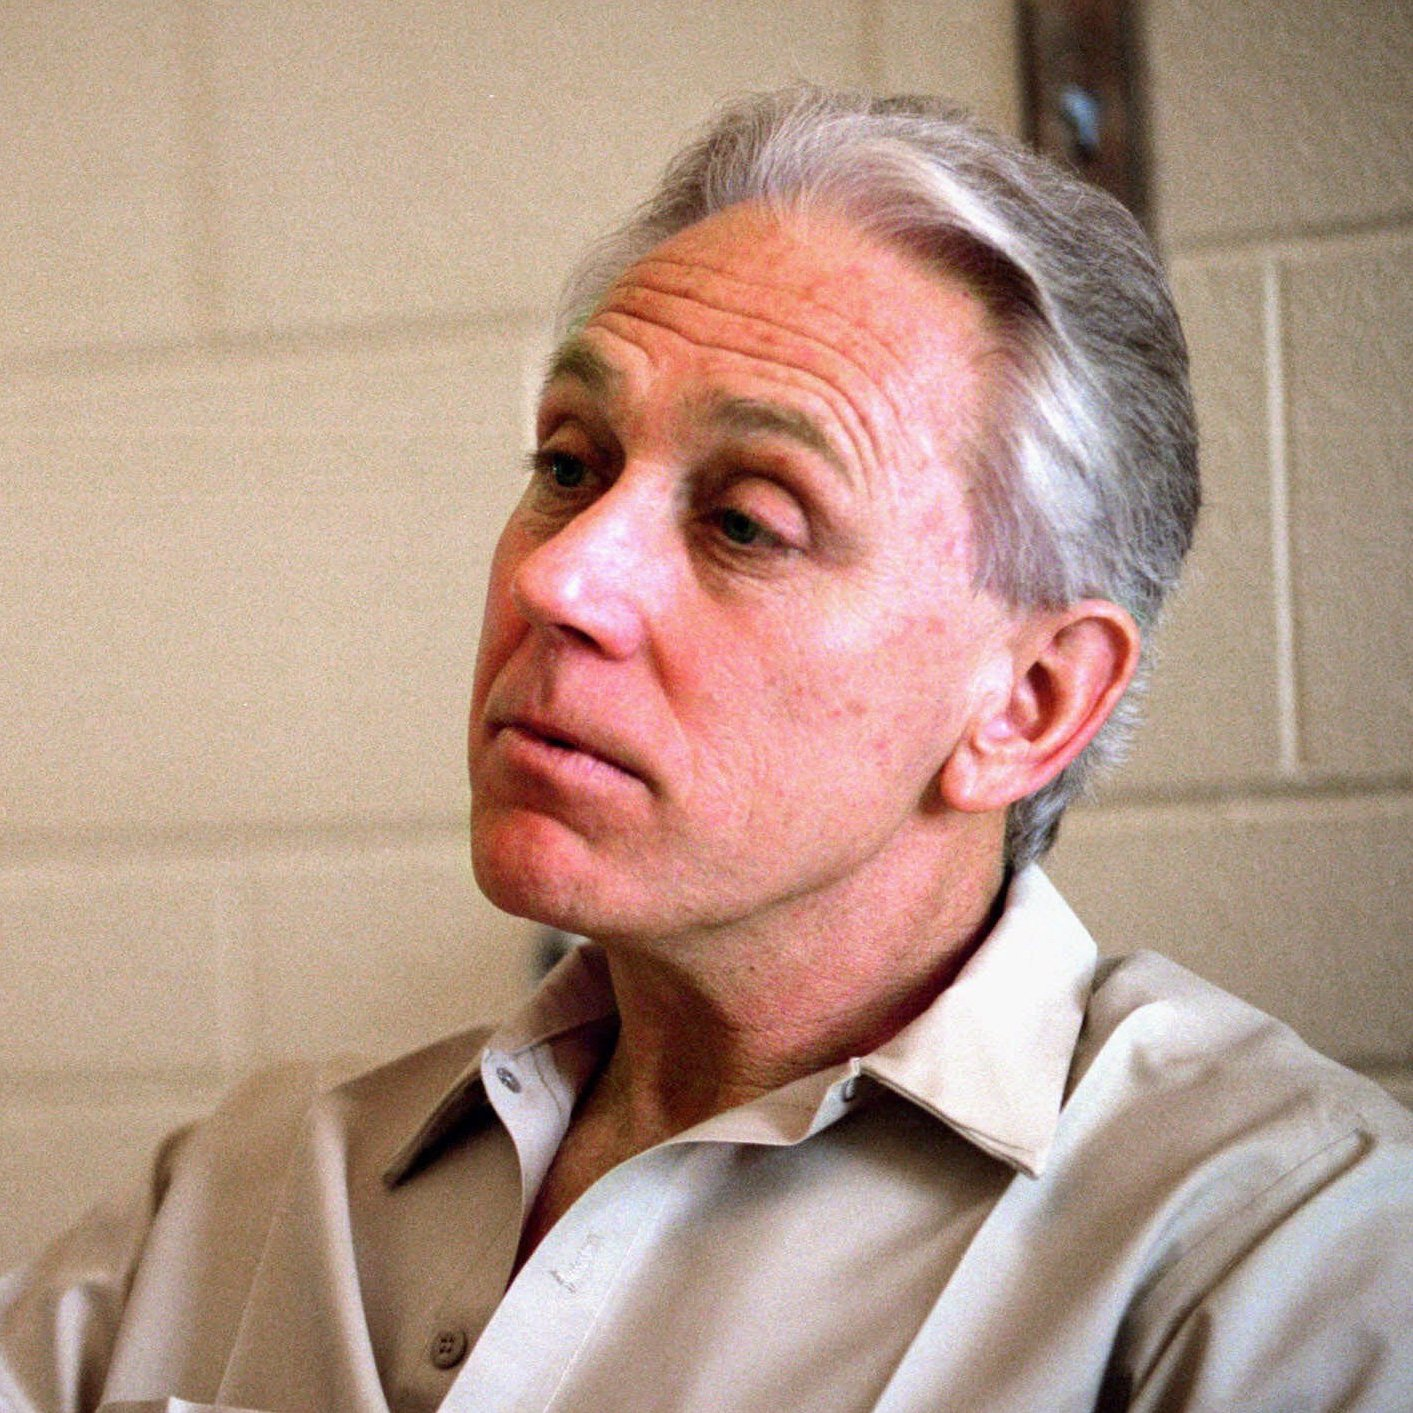 Army doctor Jeffrey McDonald, shown here in a 1995 photo, was convicted of murdering his pregnant wife and two daughters in the 1970s. He maintains that they were killed by a band of hippies.